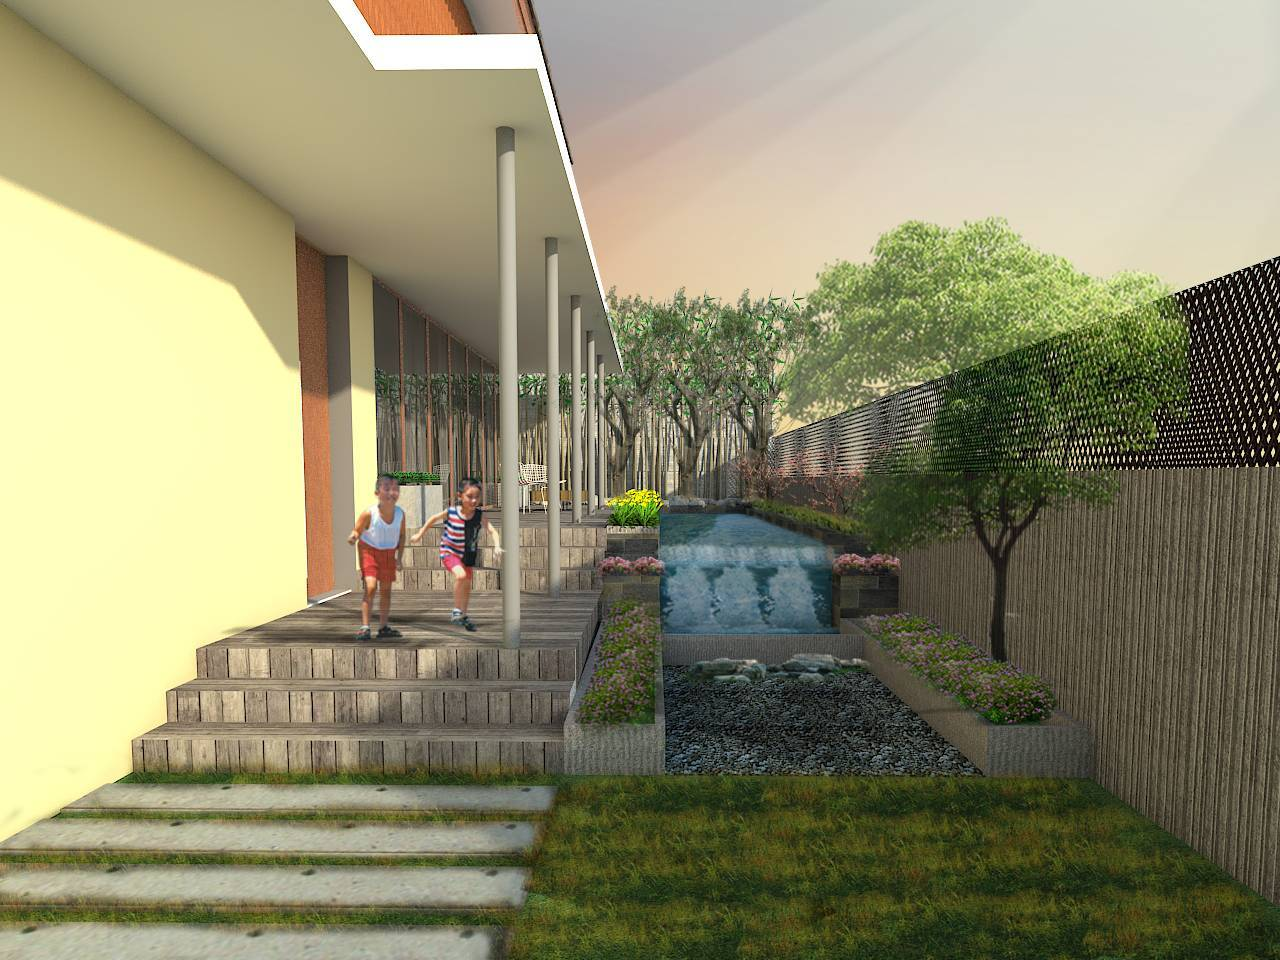 Future Architects Studio Rumah Kisi Asri Pontianak, Indonesia Pontianak, Indonesia Swimming Pool   3522